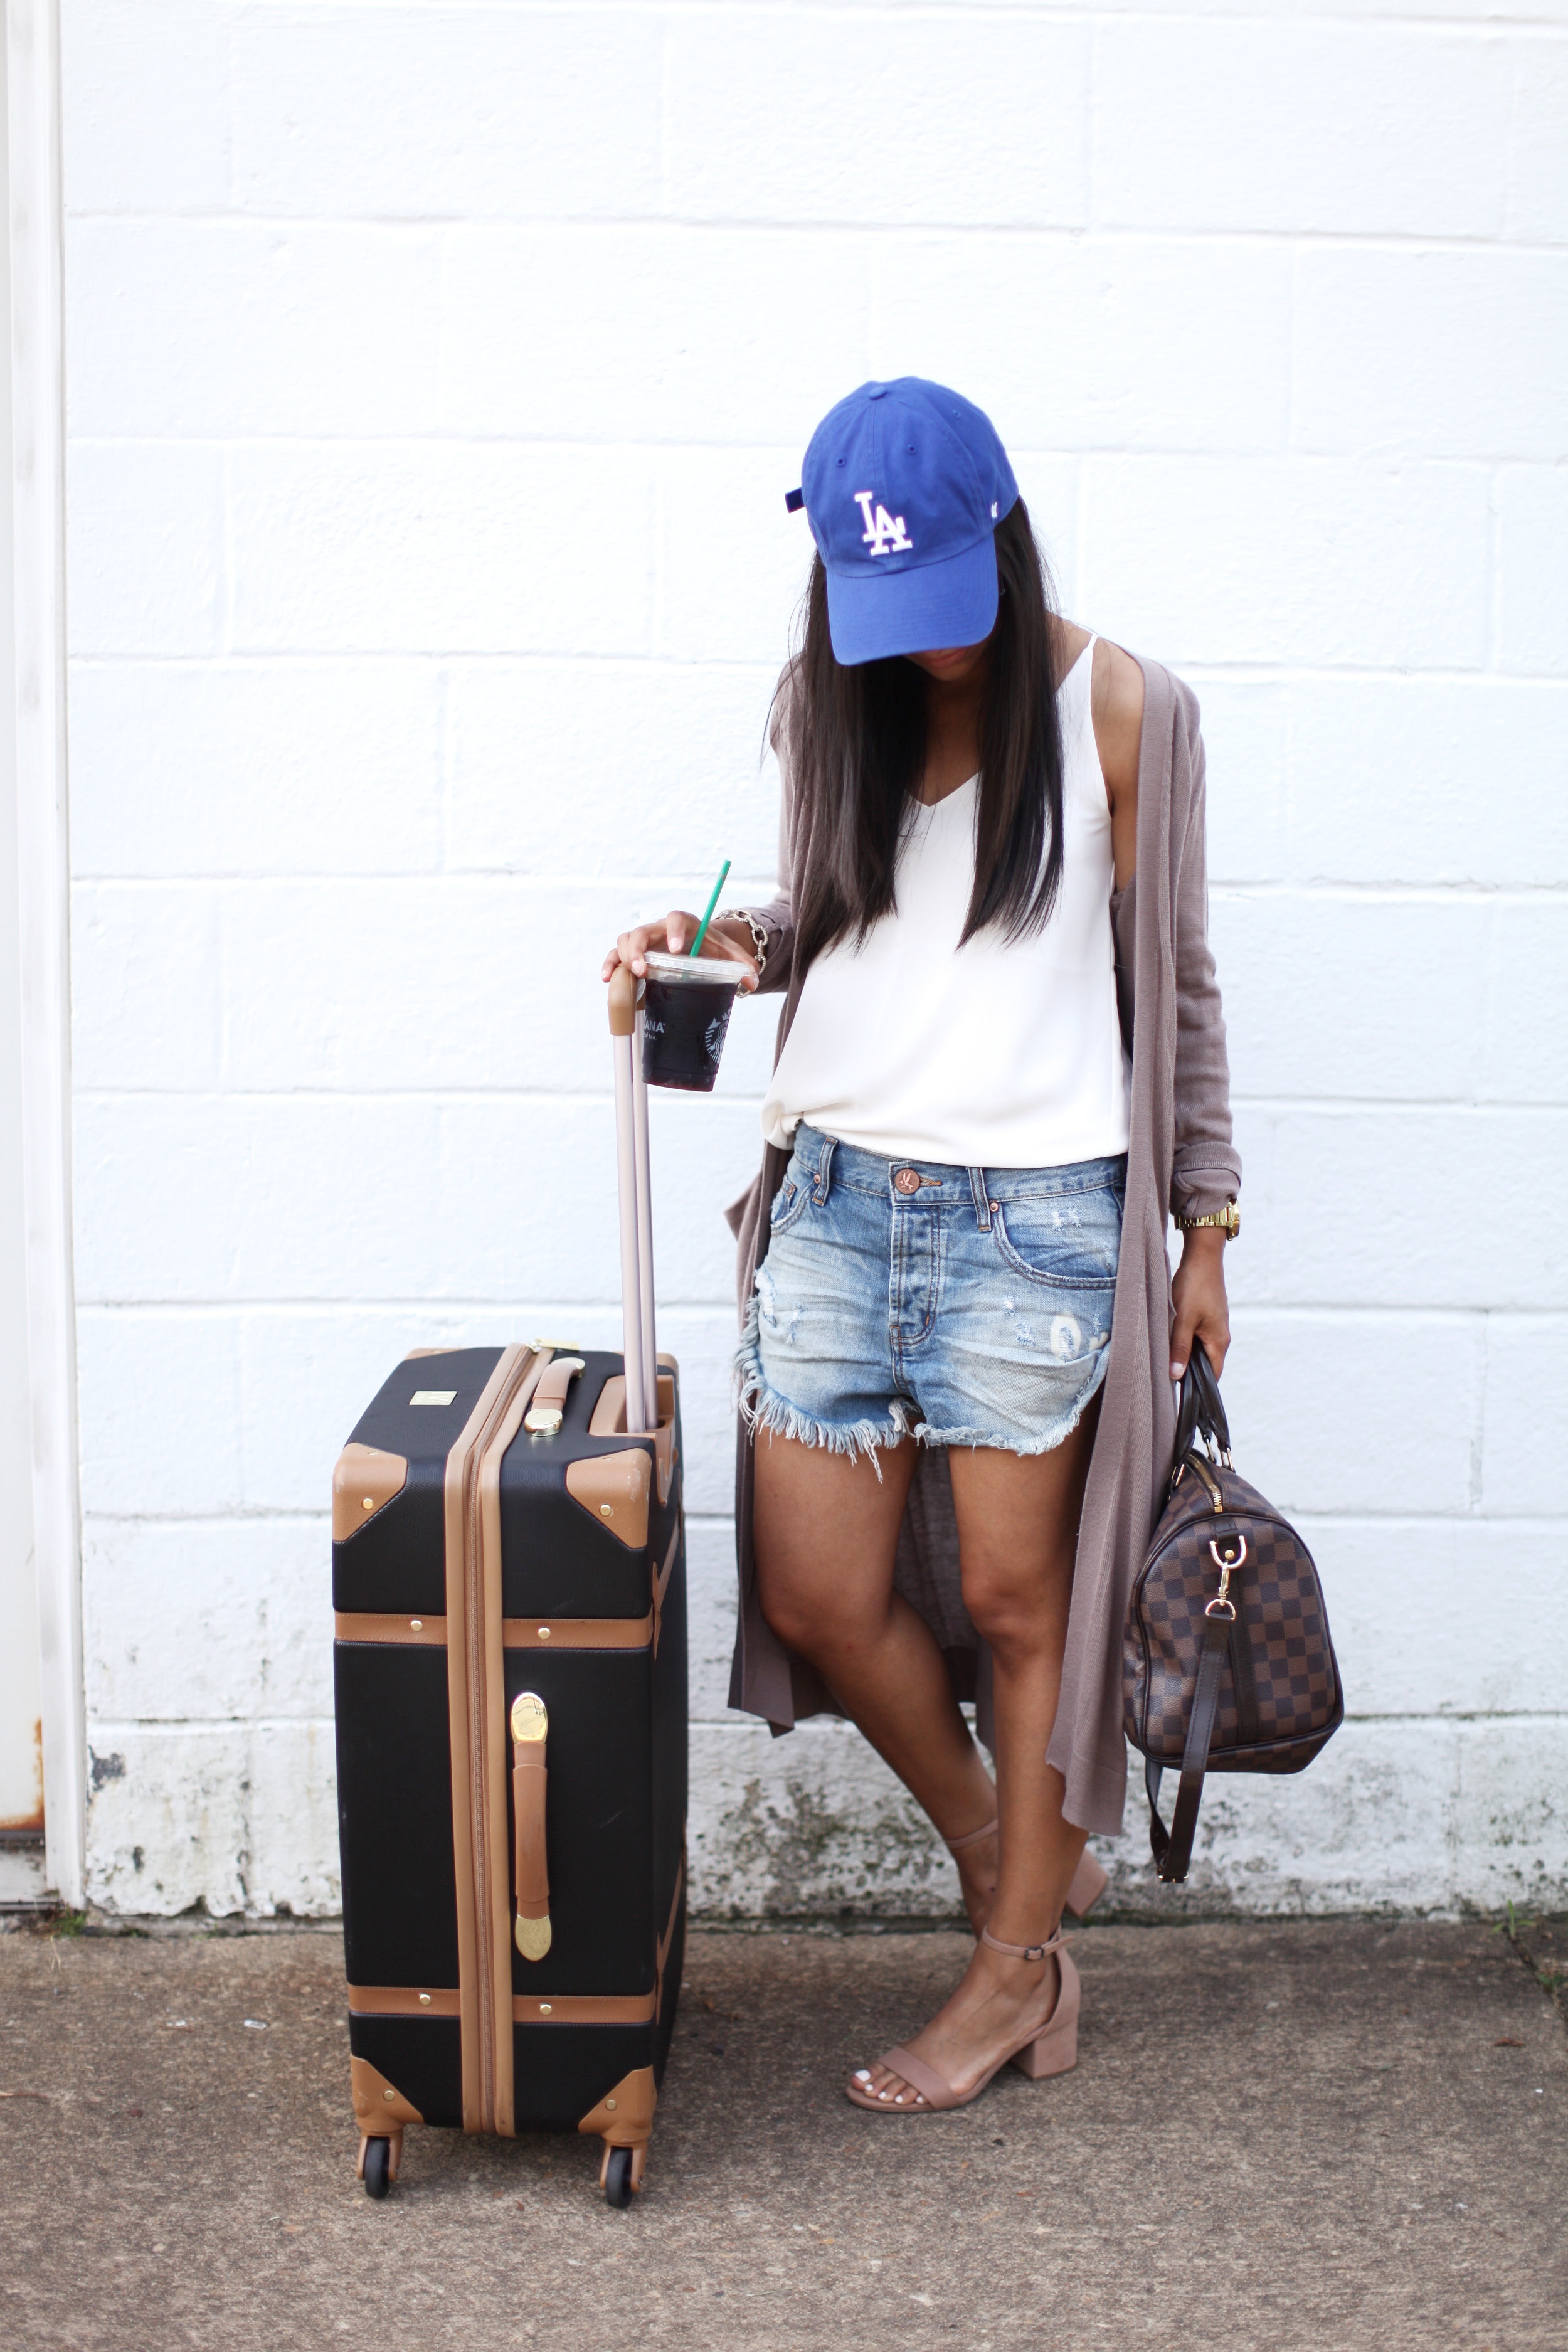 AIRPORT ATTIRE - CAP: NORDSTROM (SHOP HERE)TOP: LOFT ( SHOP HERE)SHORTS: ONE X ONETEASPOON (SHOP HERE)SHOES: MERONA (SHOP HERE)LUGGAGE : DVF (SHOP HERE)